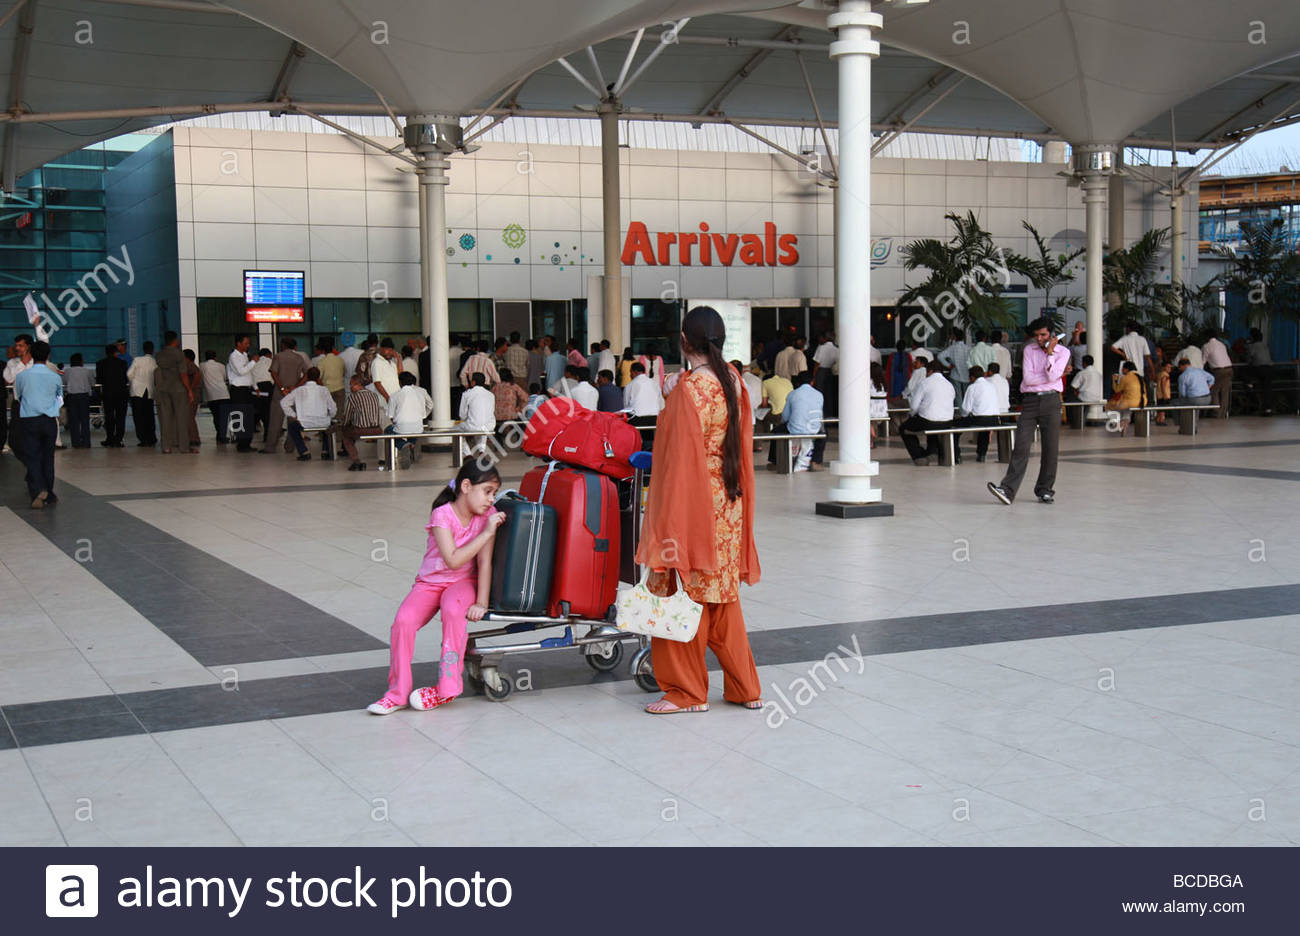 Bombay Airport Stock Photos & Bombay Airport Stock Images.